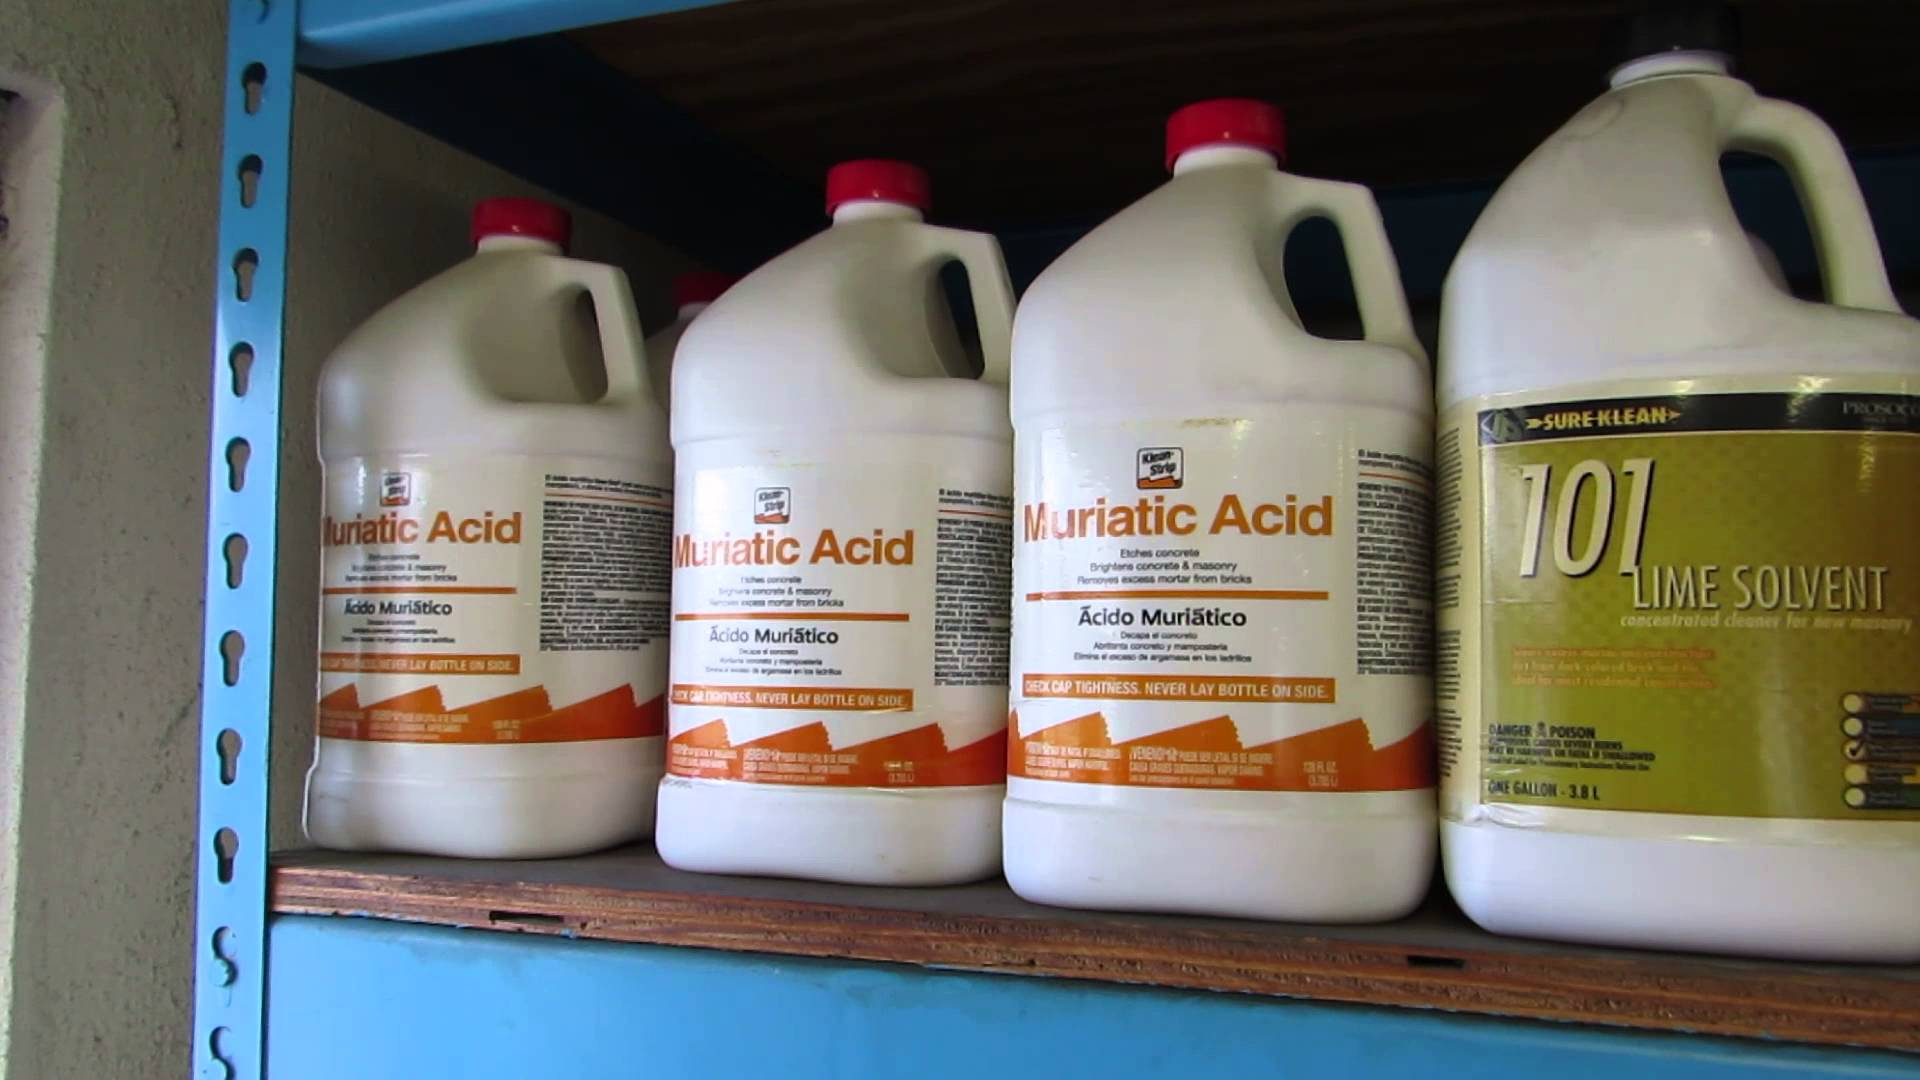 How To Dispose Of Muriatic Acid Safely Pool Cleaner